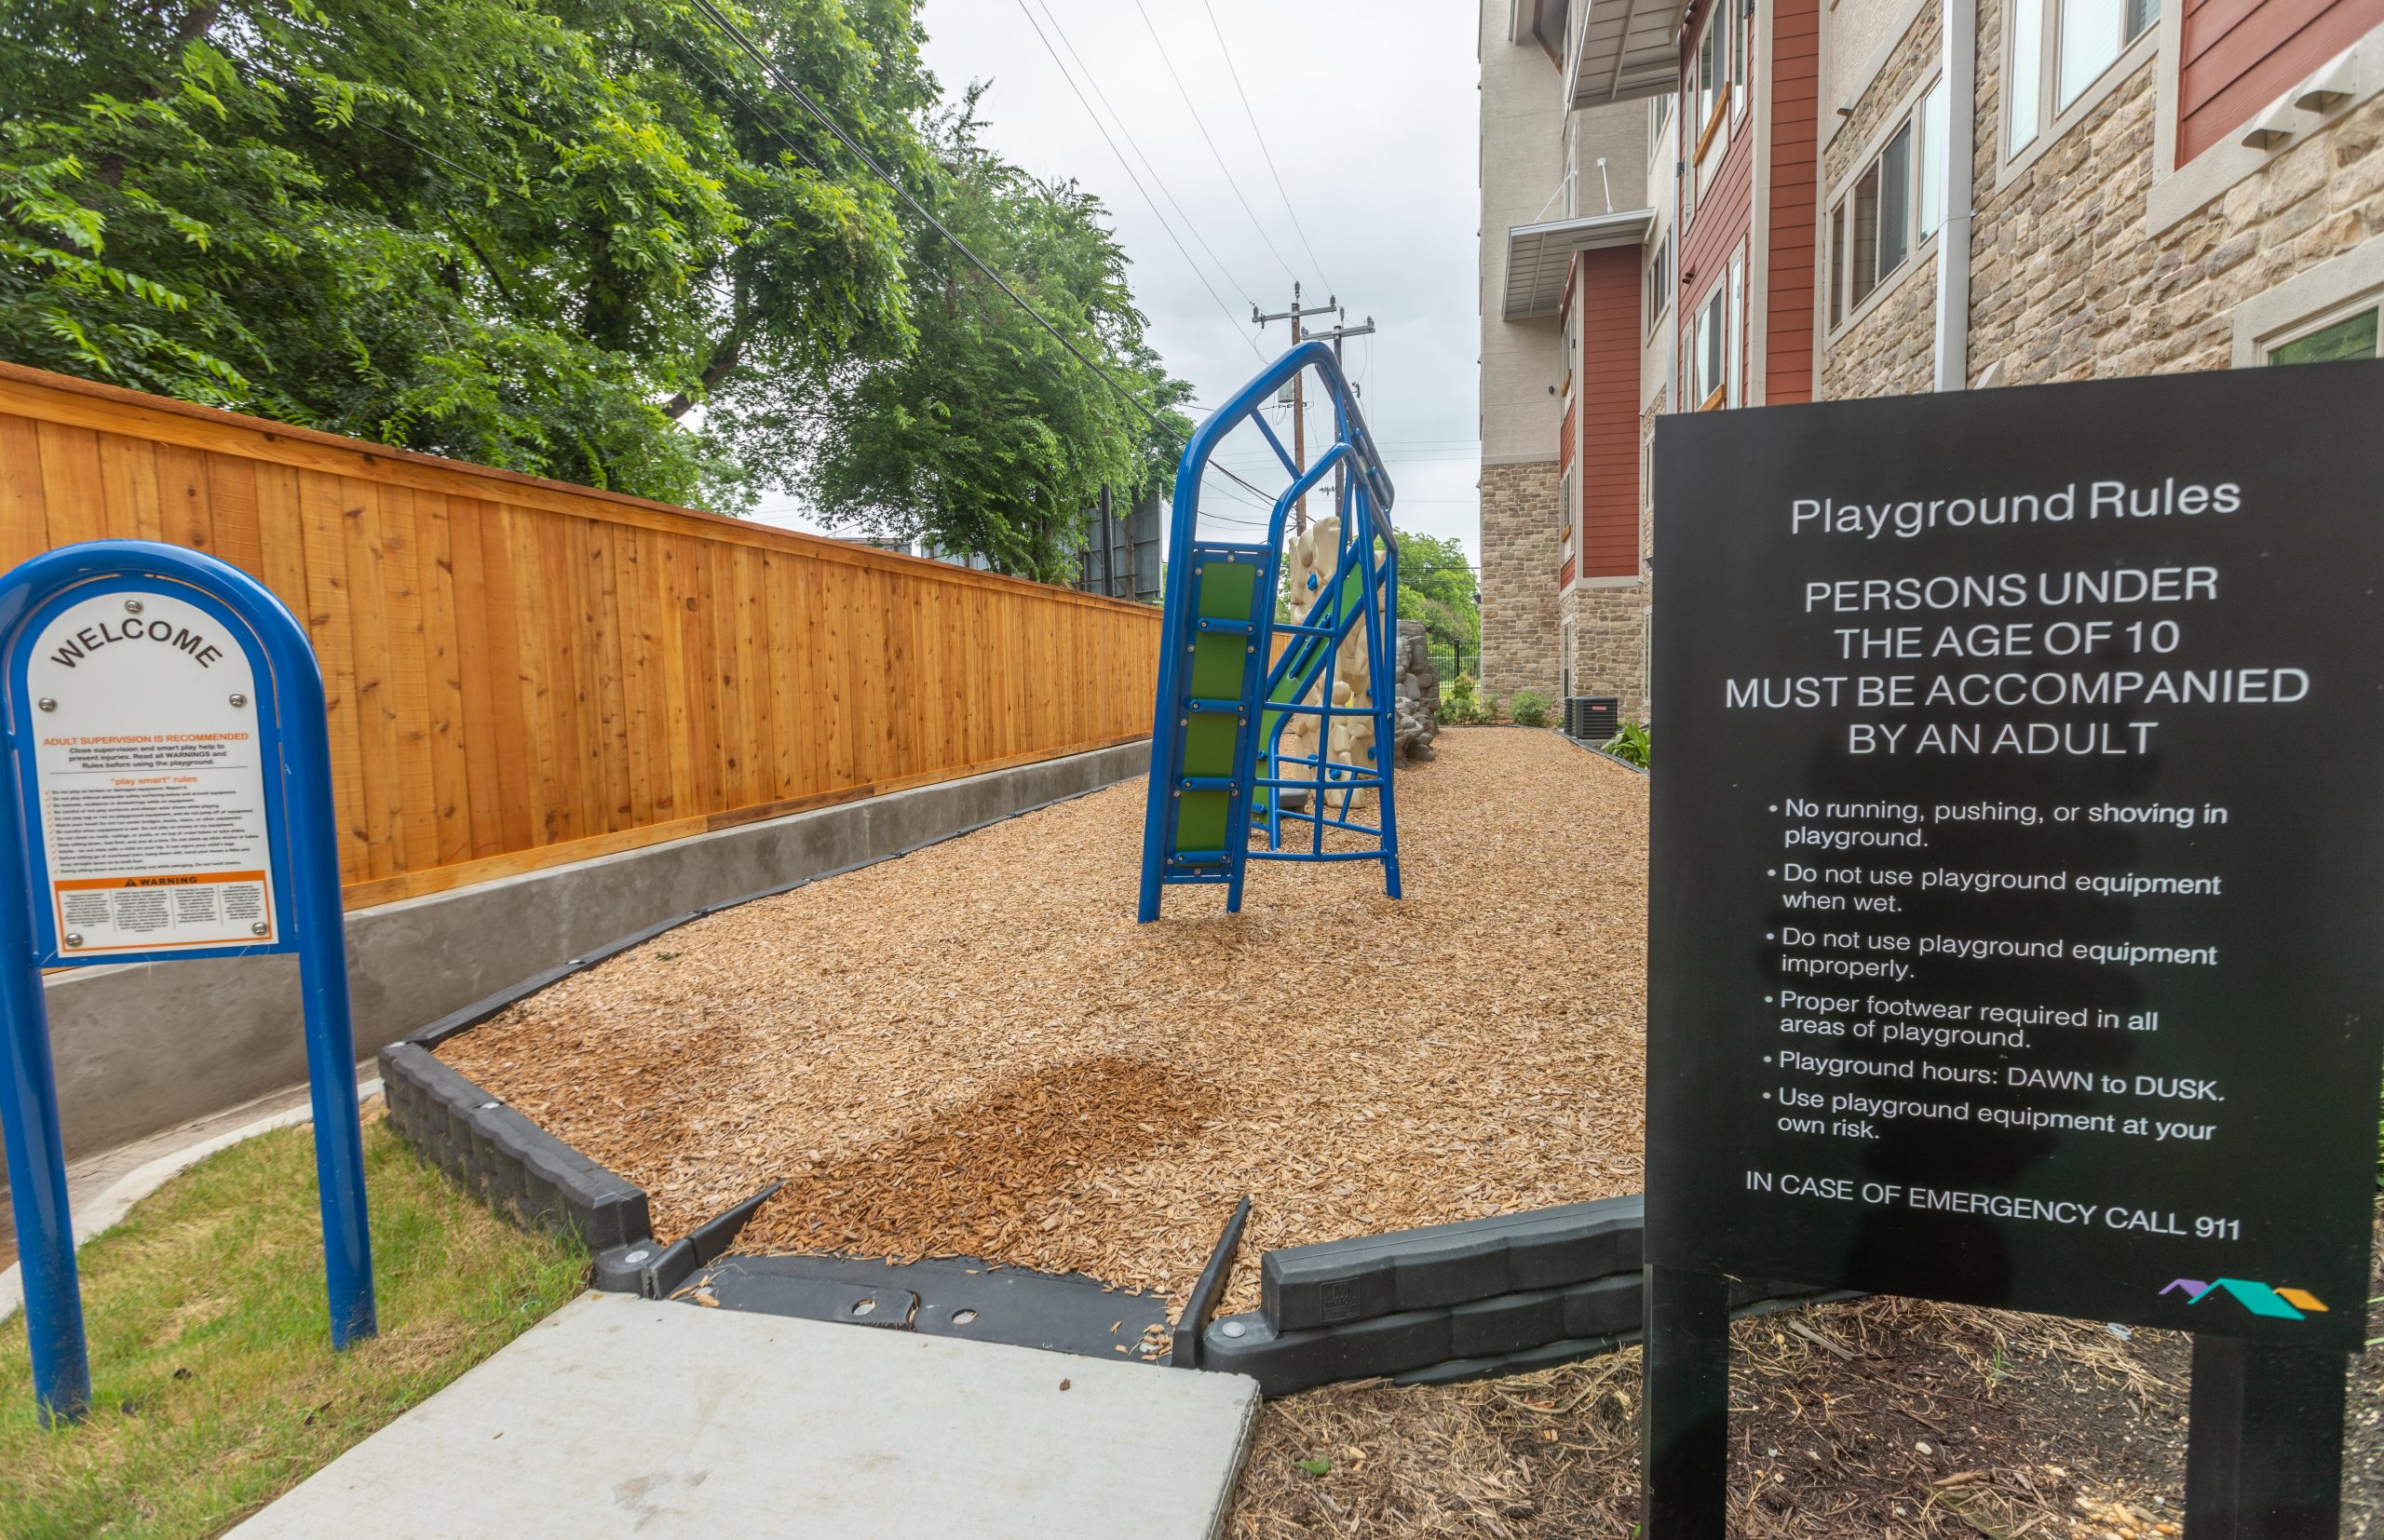 playground rules and playscape image